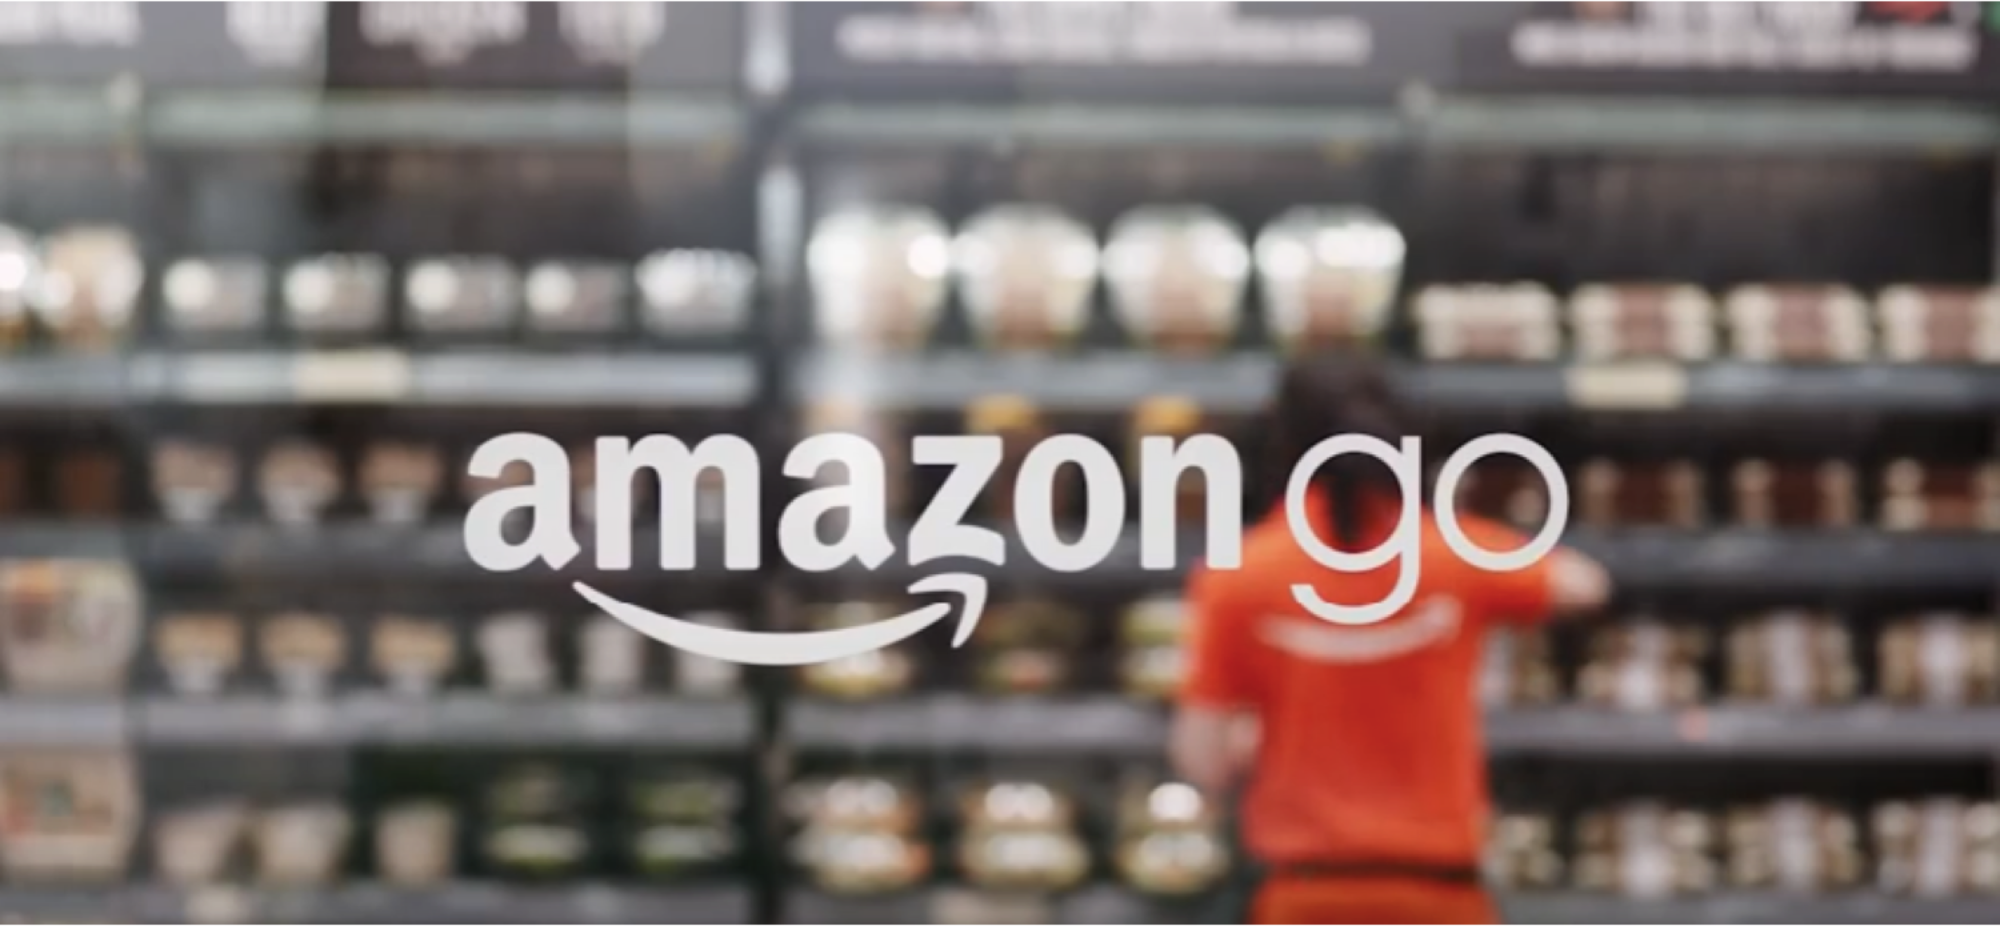 How Amazon Go could benefit… Amazon